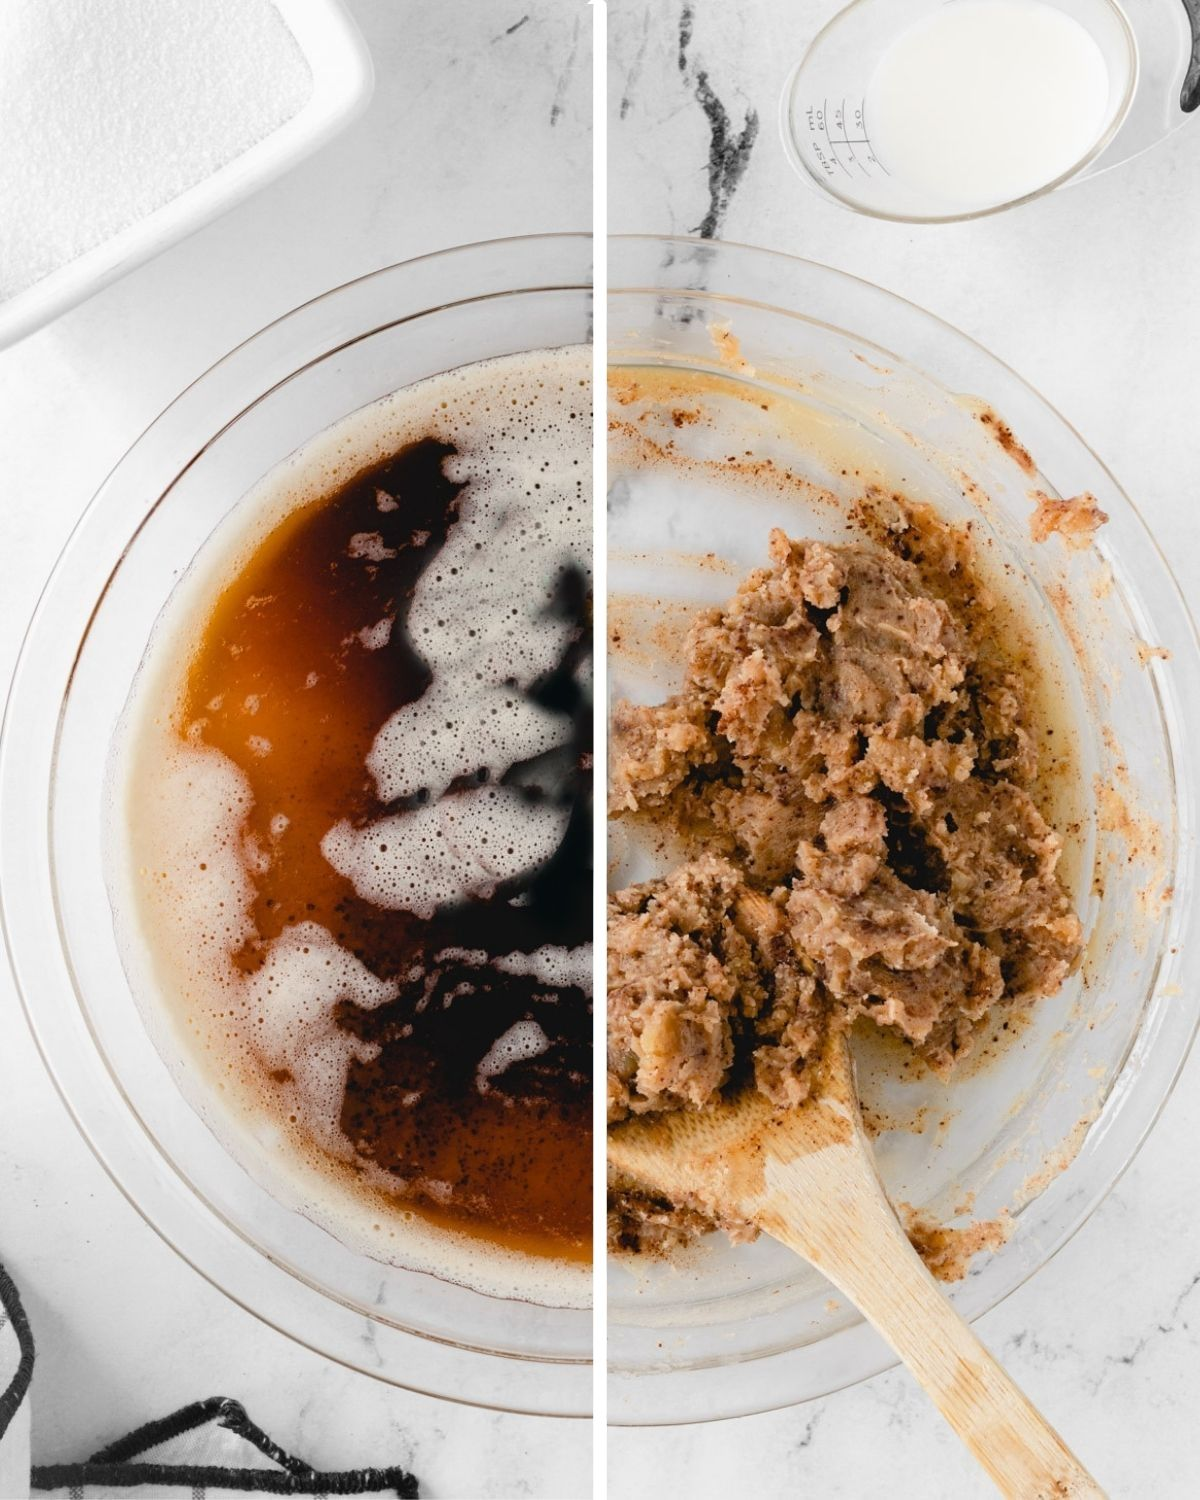 On the left: Melted brown butter, On the right: Brown butter after it has cooled and solidified.